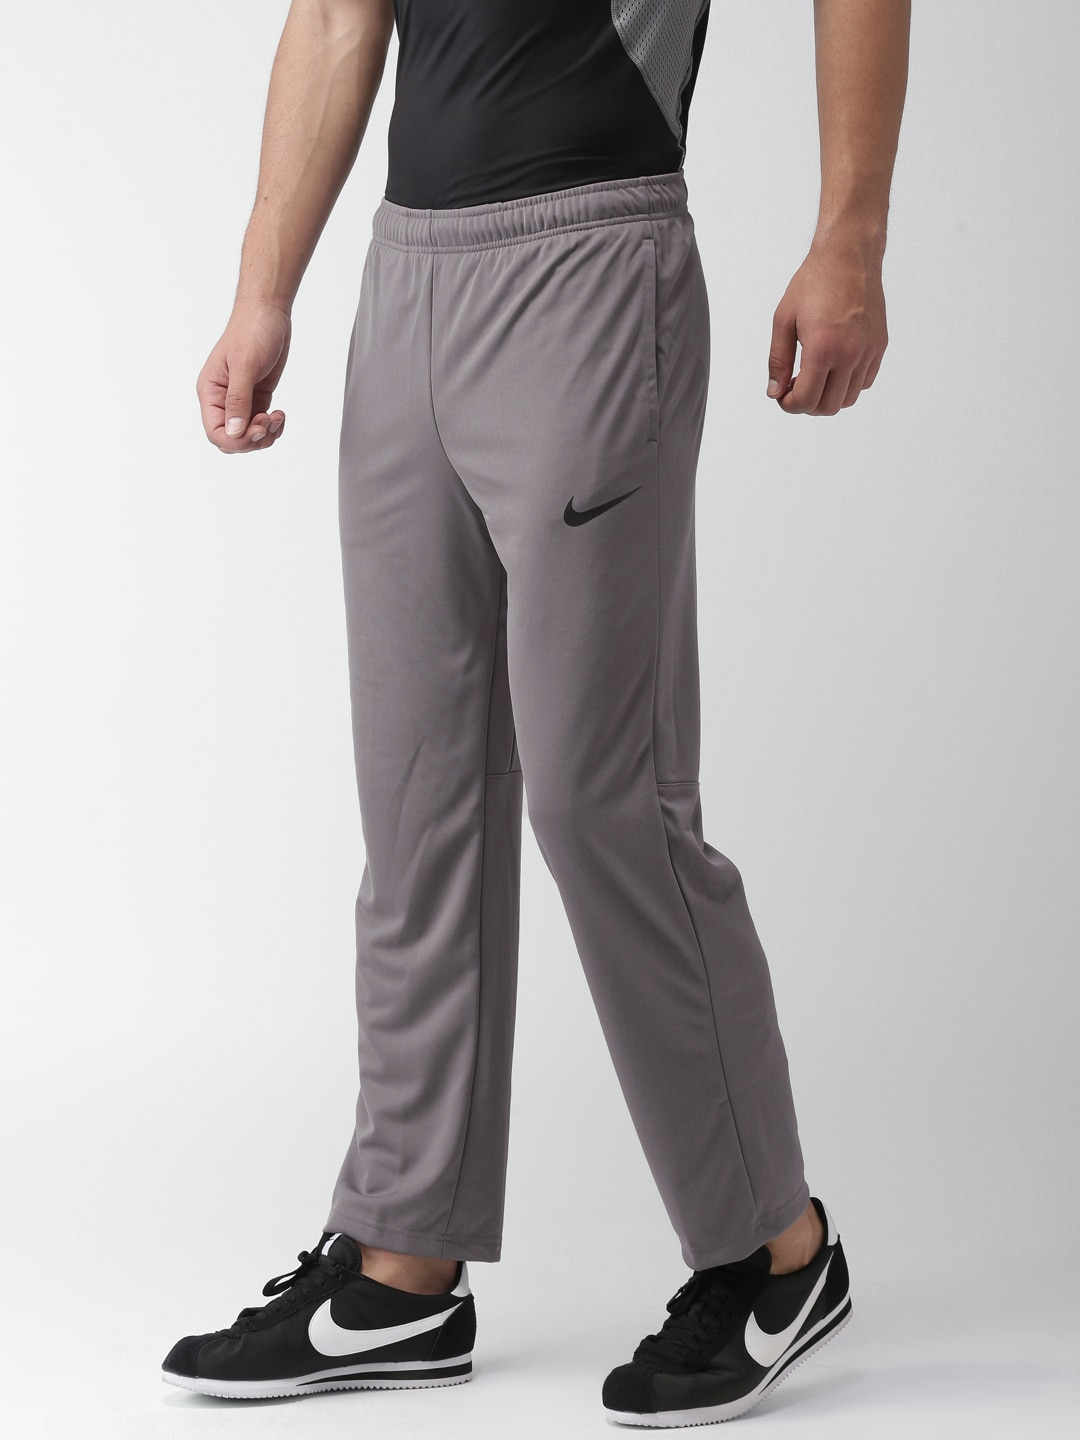 f1fac9ebc Nike Apparel - Buy Nike Apparel Online in India